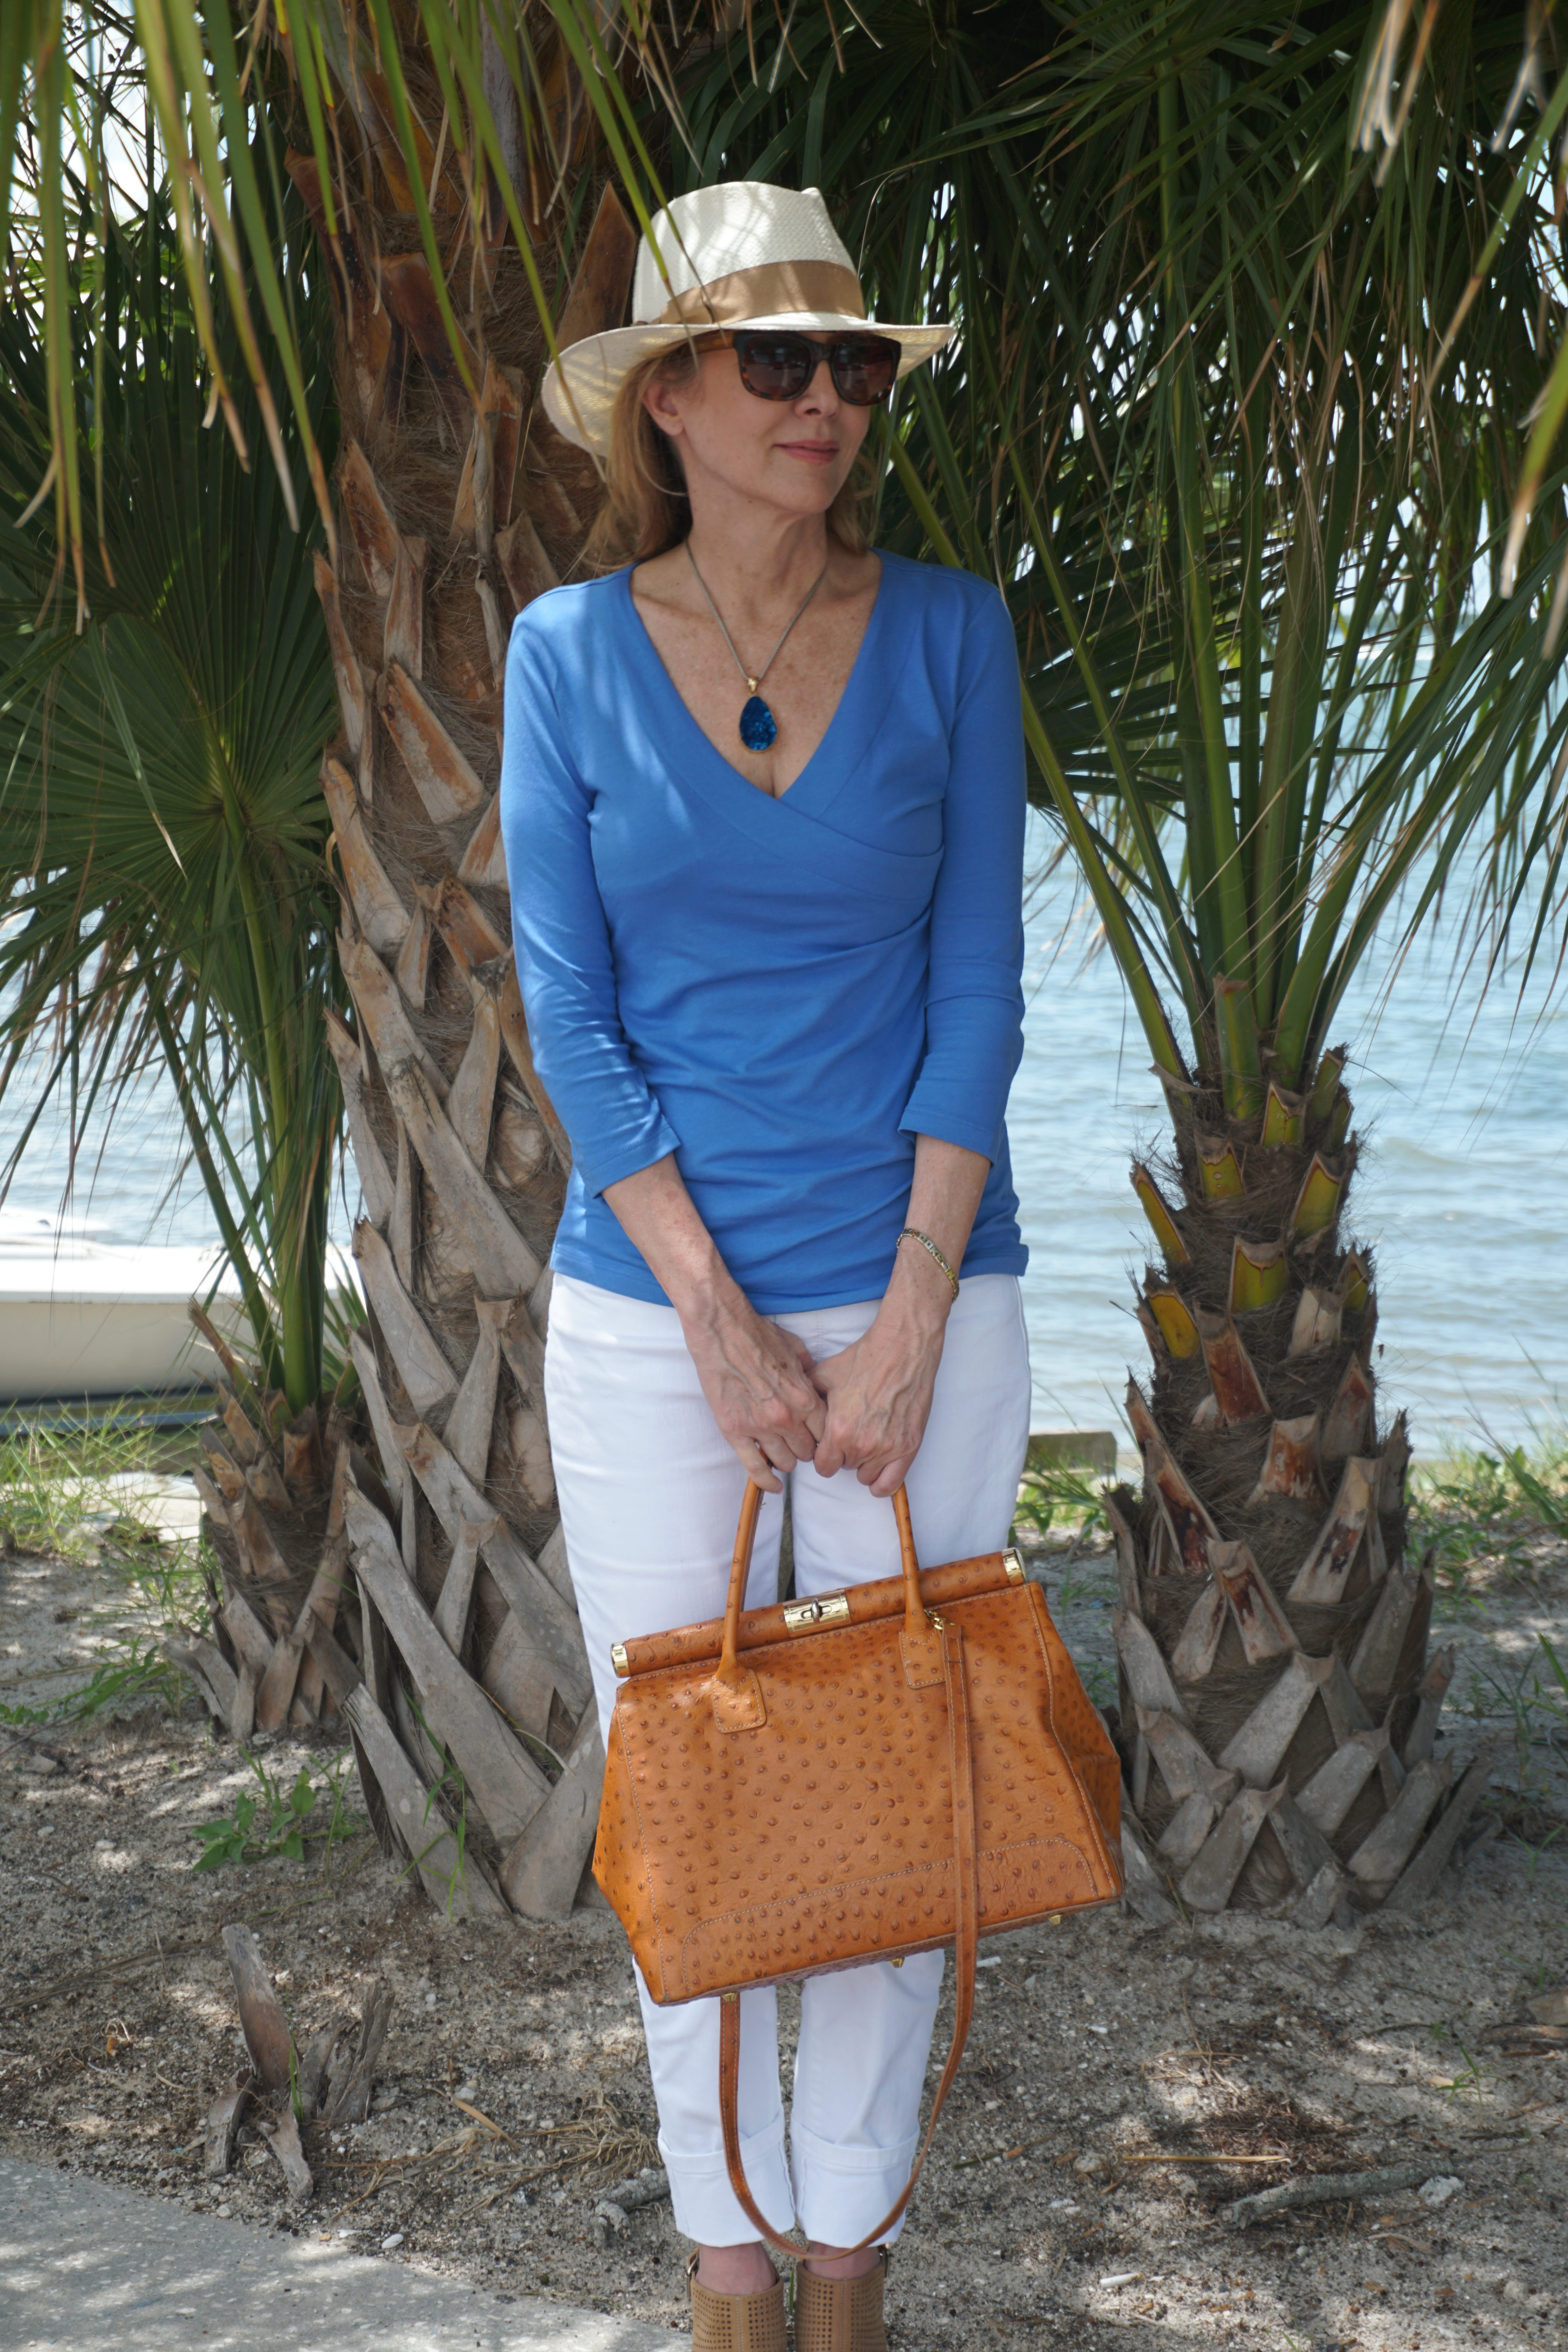 Easy Labor Day look with sharing ajourney and soft surroundings